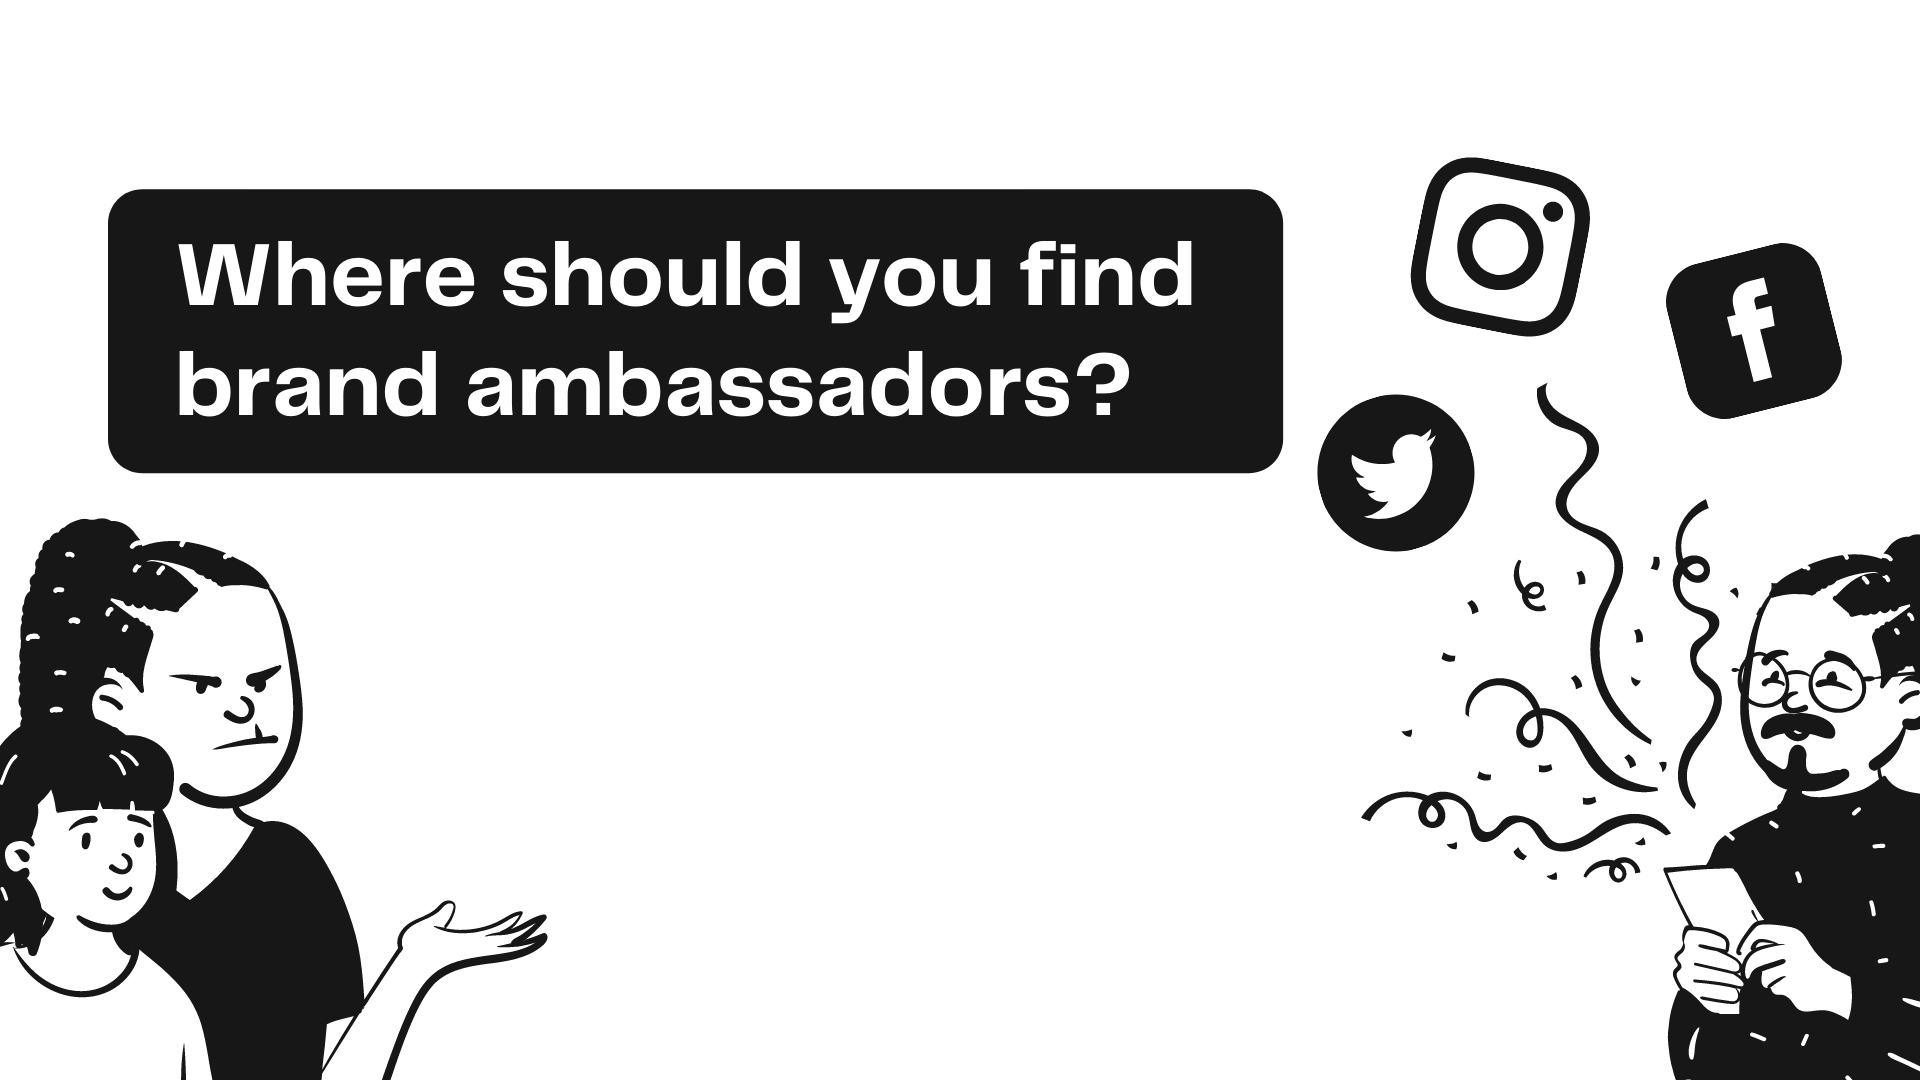 Where can you find brand ambassadors